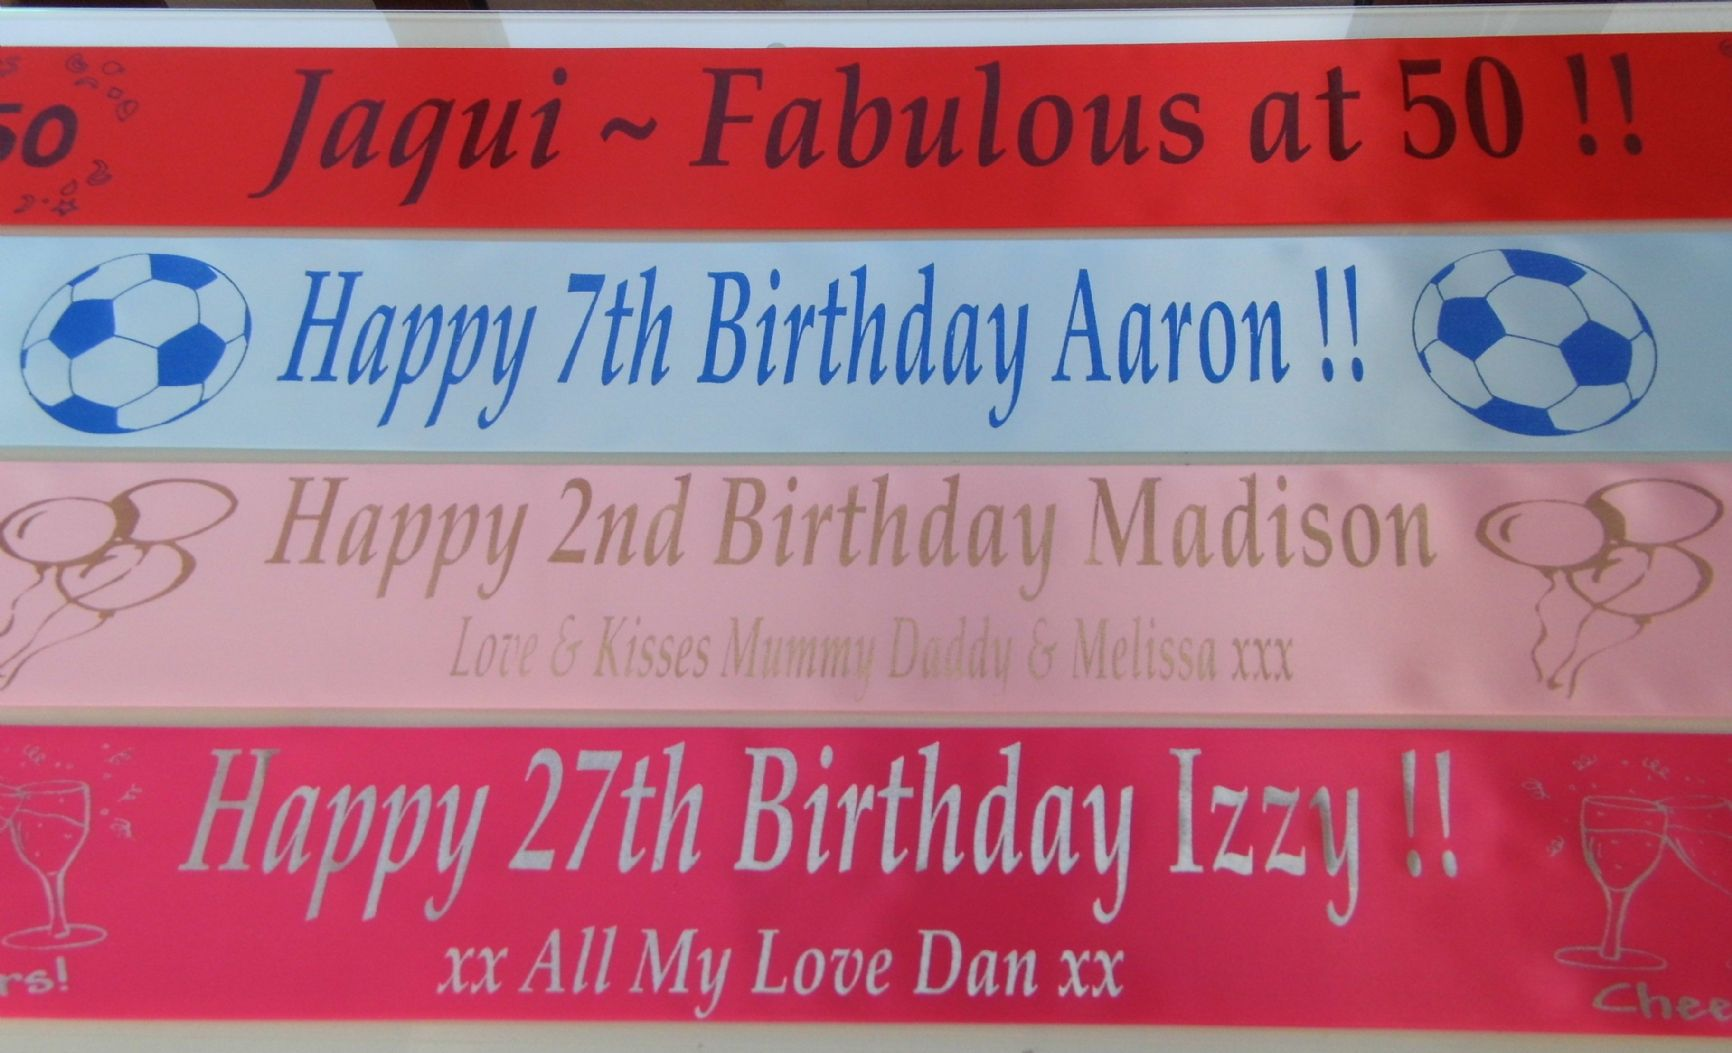 cheap personalised birthday banners with photos ; personalised-birthday-banner-%5b2%5d-11-p